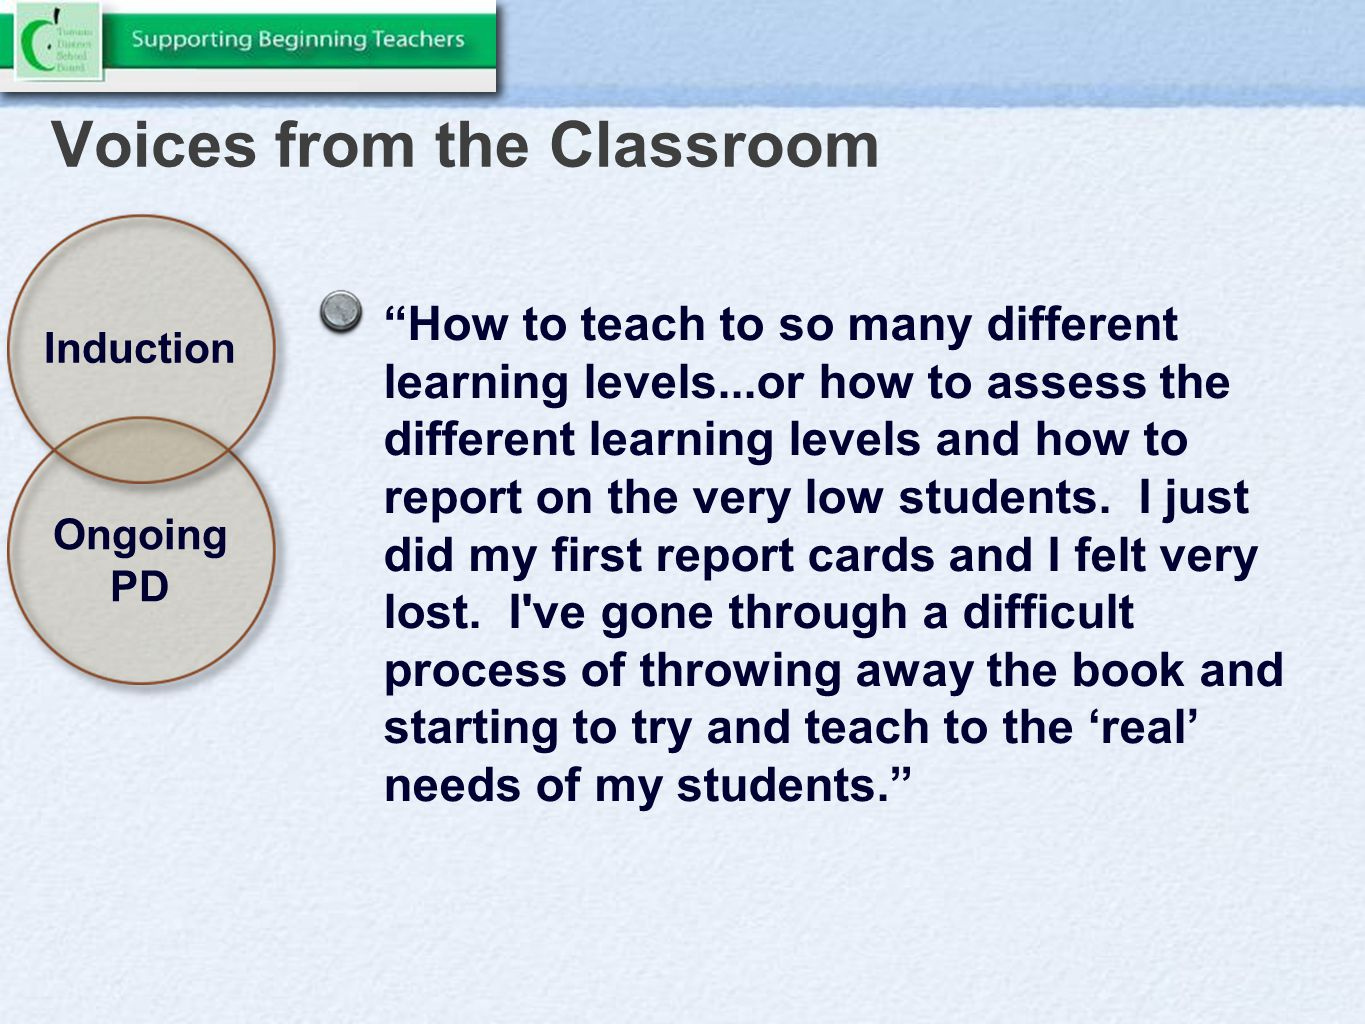 Voices from the Classroom How to teach to so many different learning levels...or how to assess the different learning levels and how to report on the very low students.